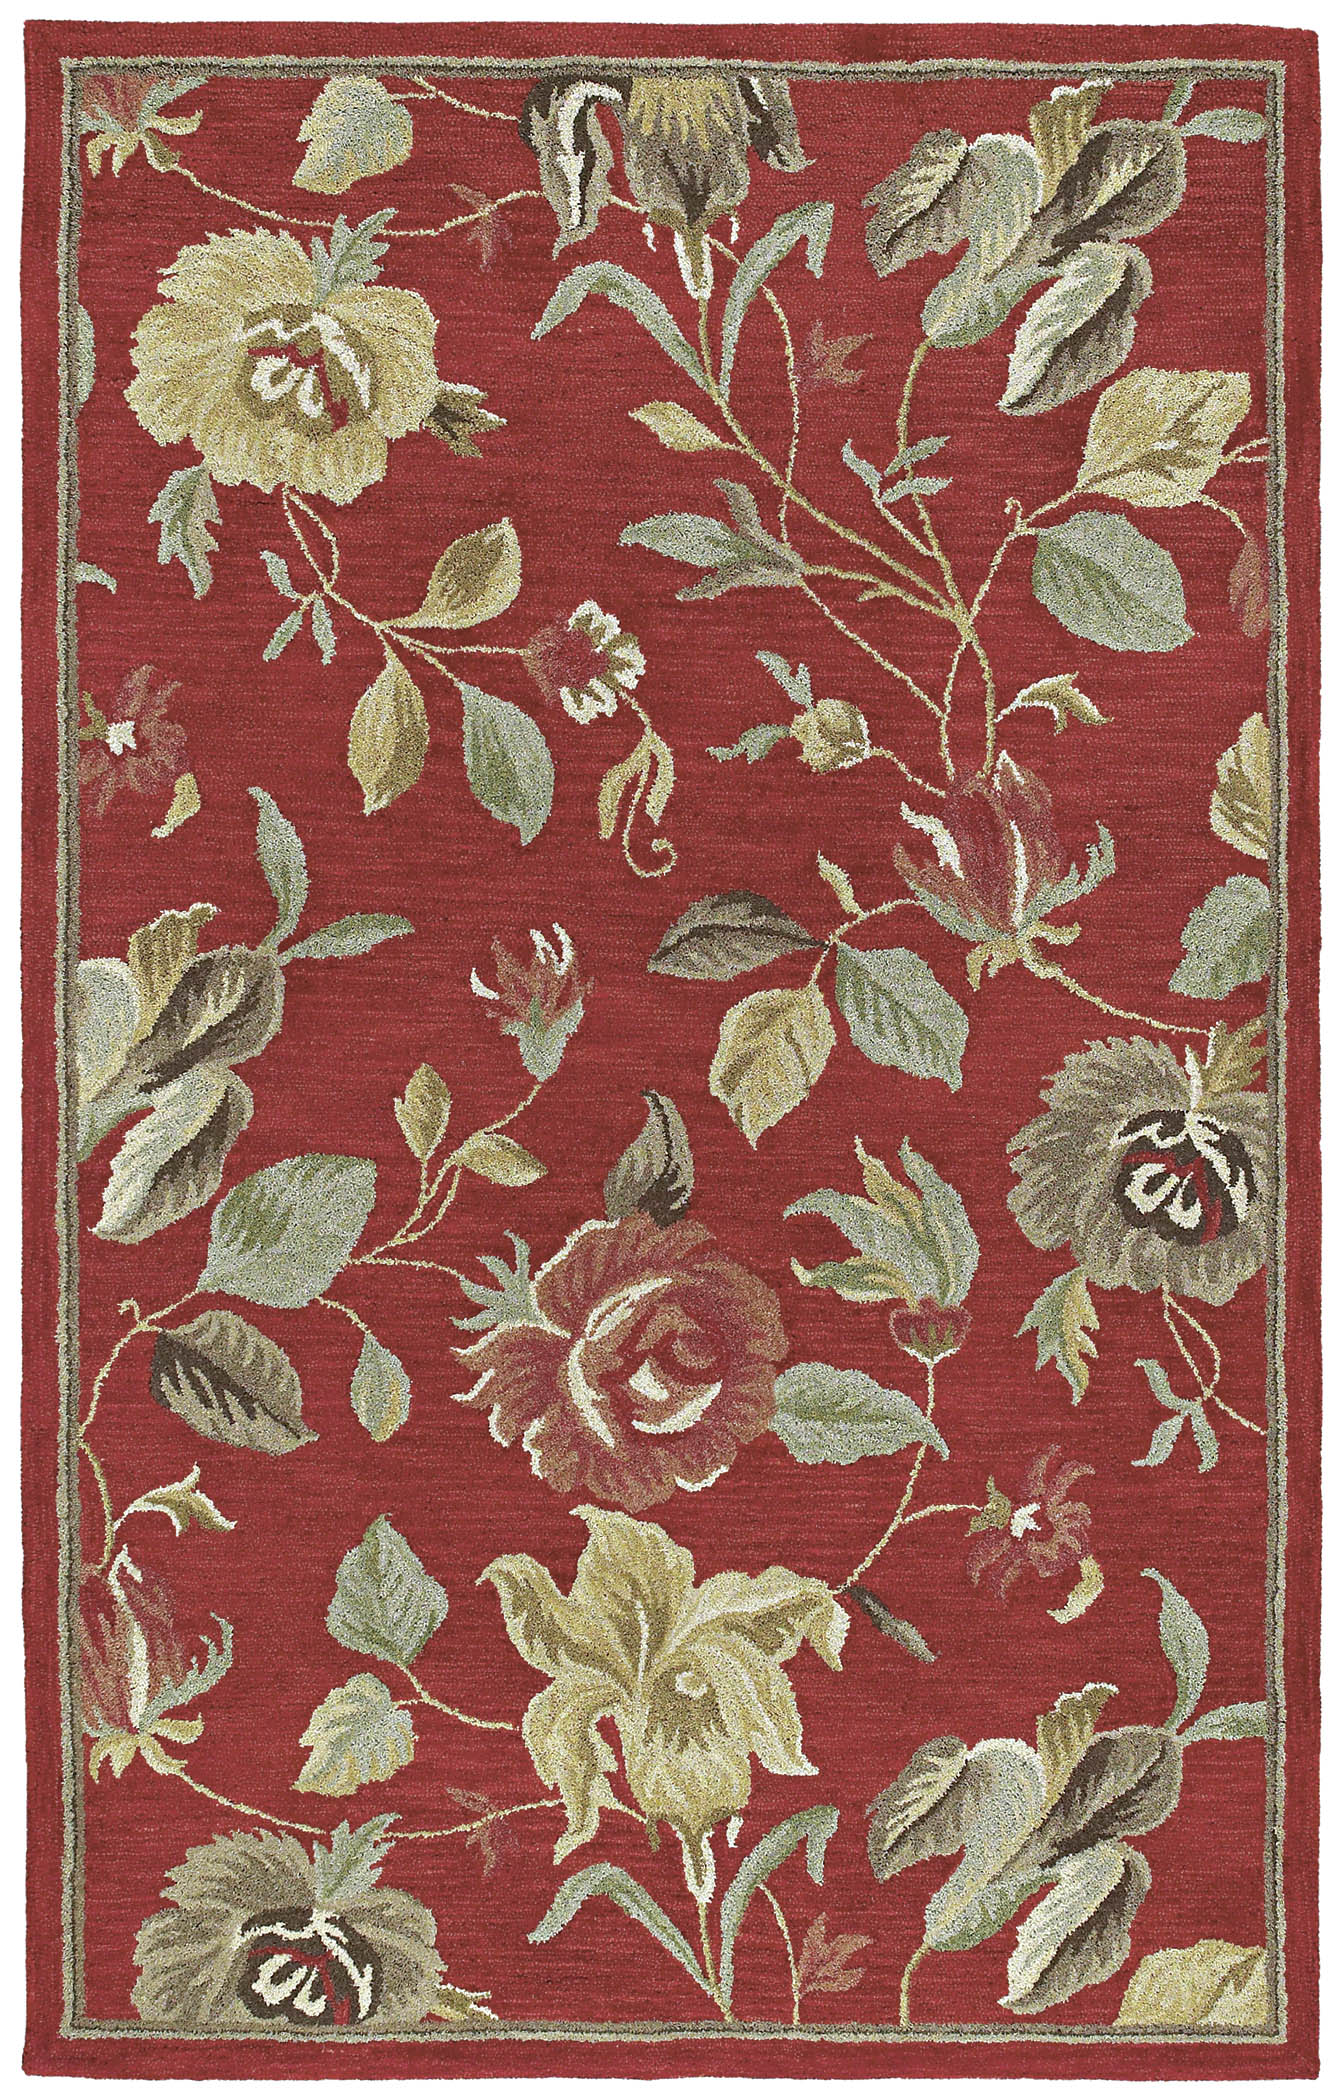 Khazana 6557 Savannah Red 25 Rug by Kaleen